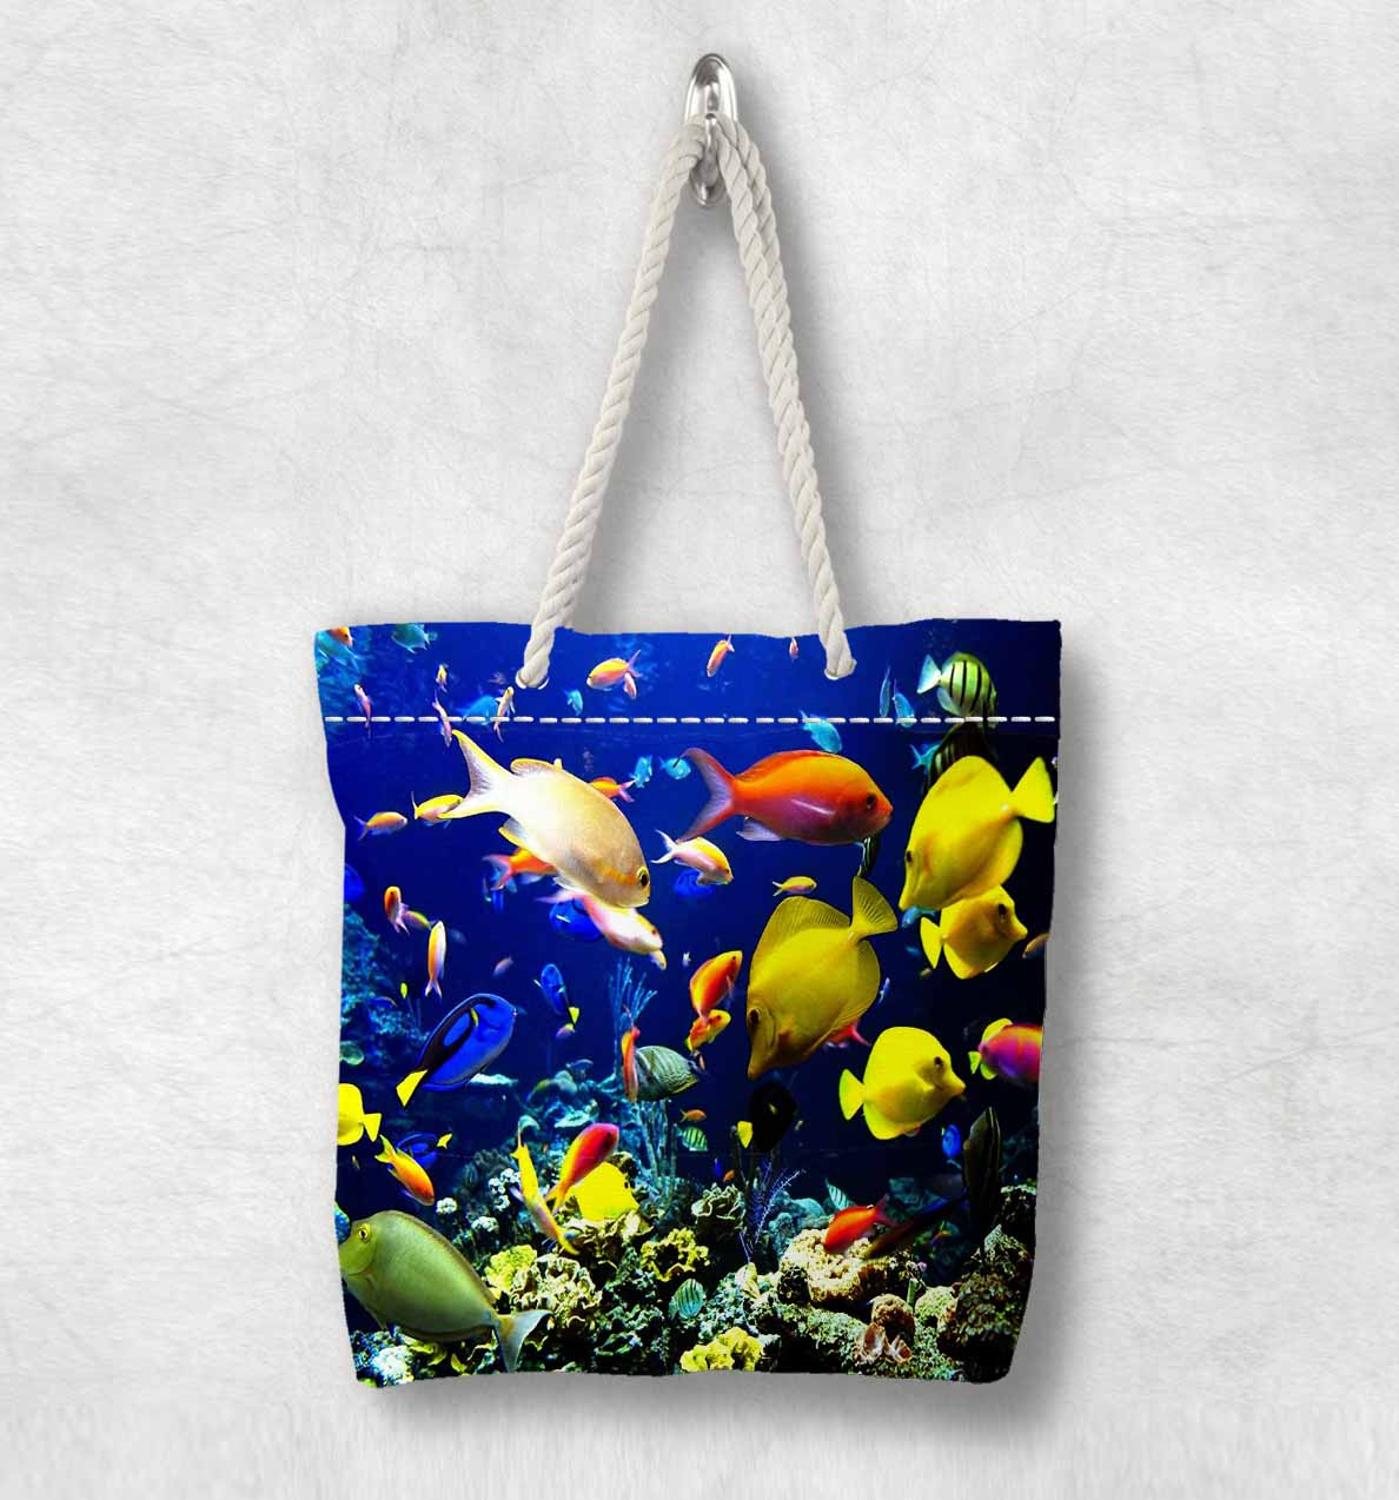 Else Tropical Aquarium Under Sea Fishes New Fashion White Rope Handle Canvas Bag Cotton Canvas Zippered Tote Bag Shoulder Bag